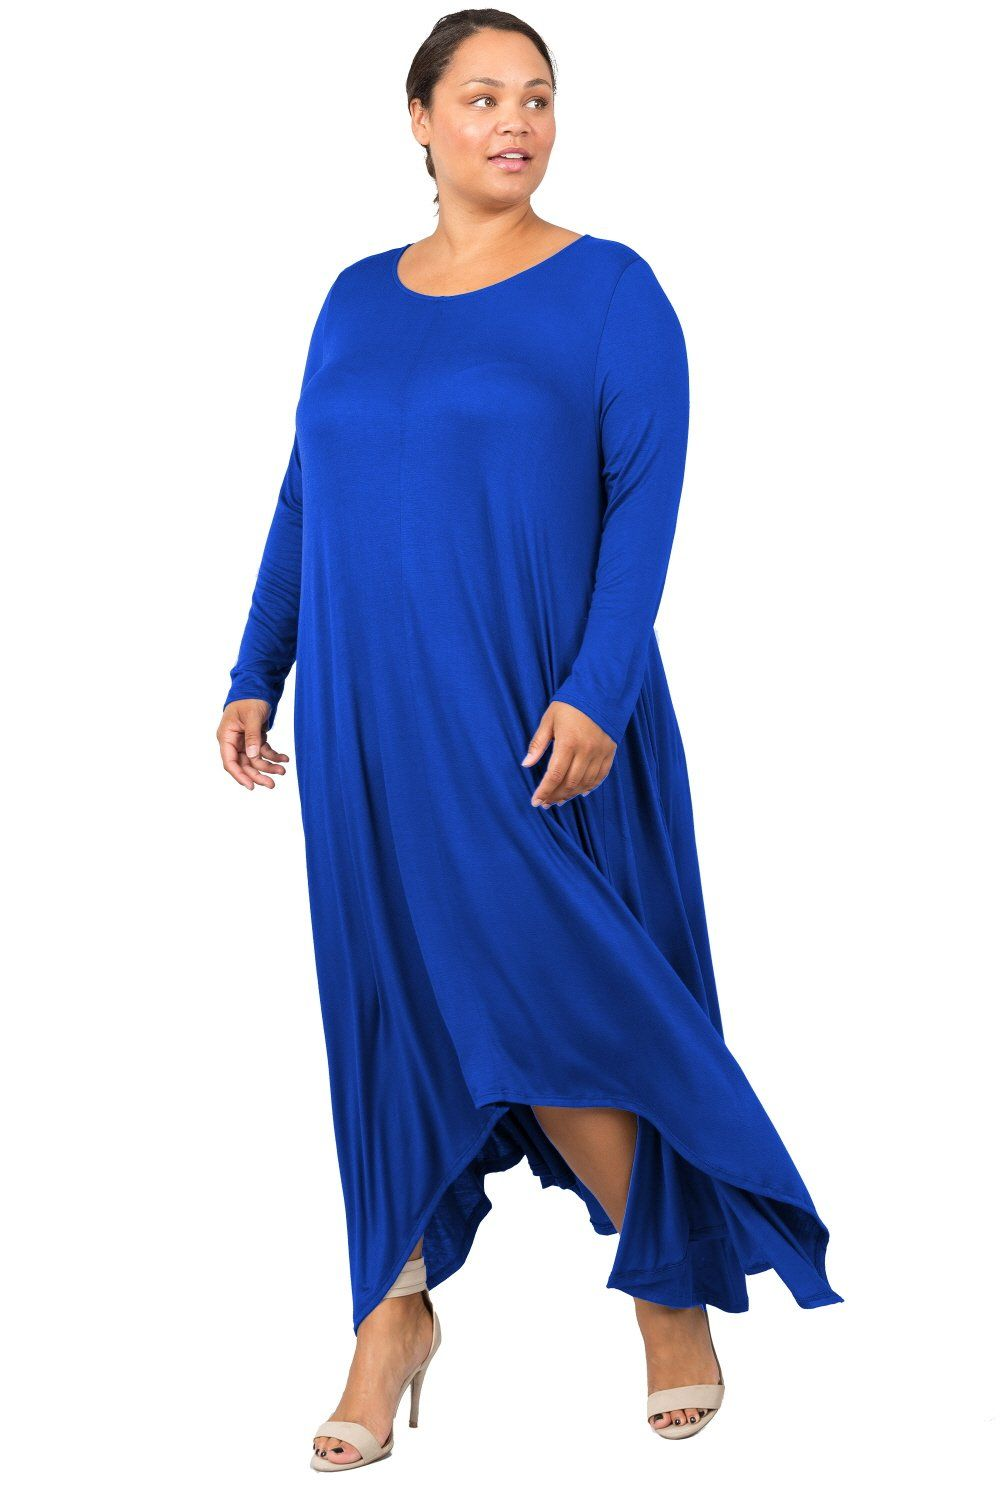 Maternity styles modest maternity maxi dress love in dcpx